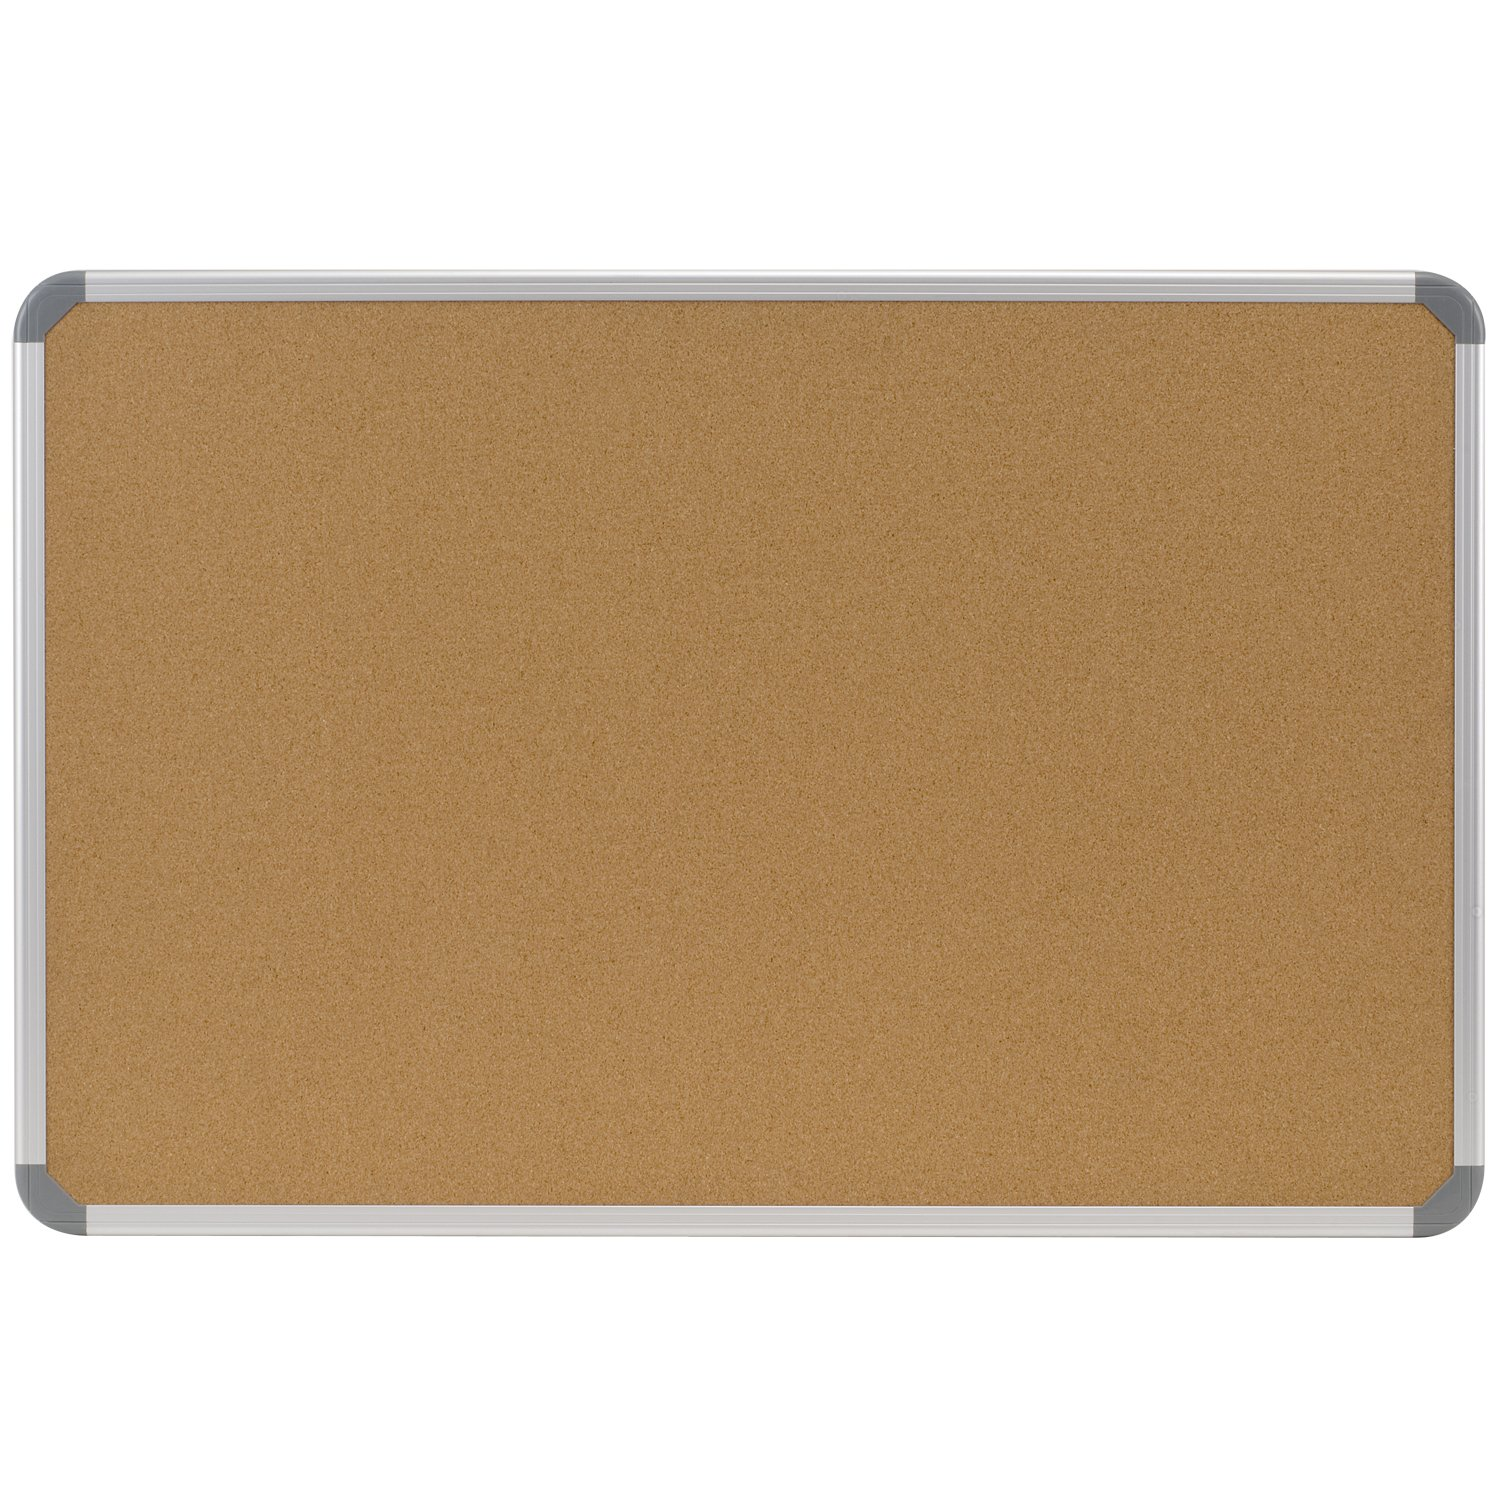 Ghent 48''x96'' Aluminum Radial Edge Euro-Style Frame Natural Cork Bulletin Board, Made in the USA